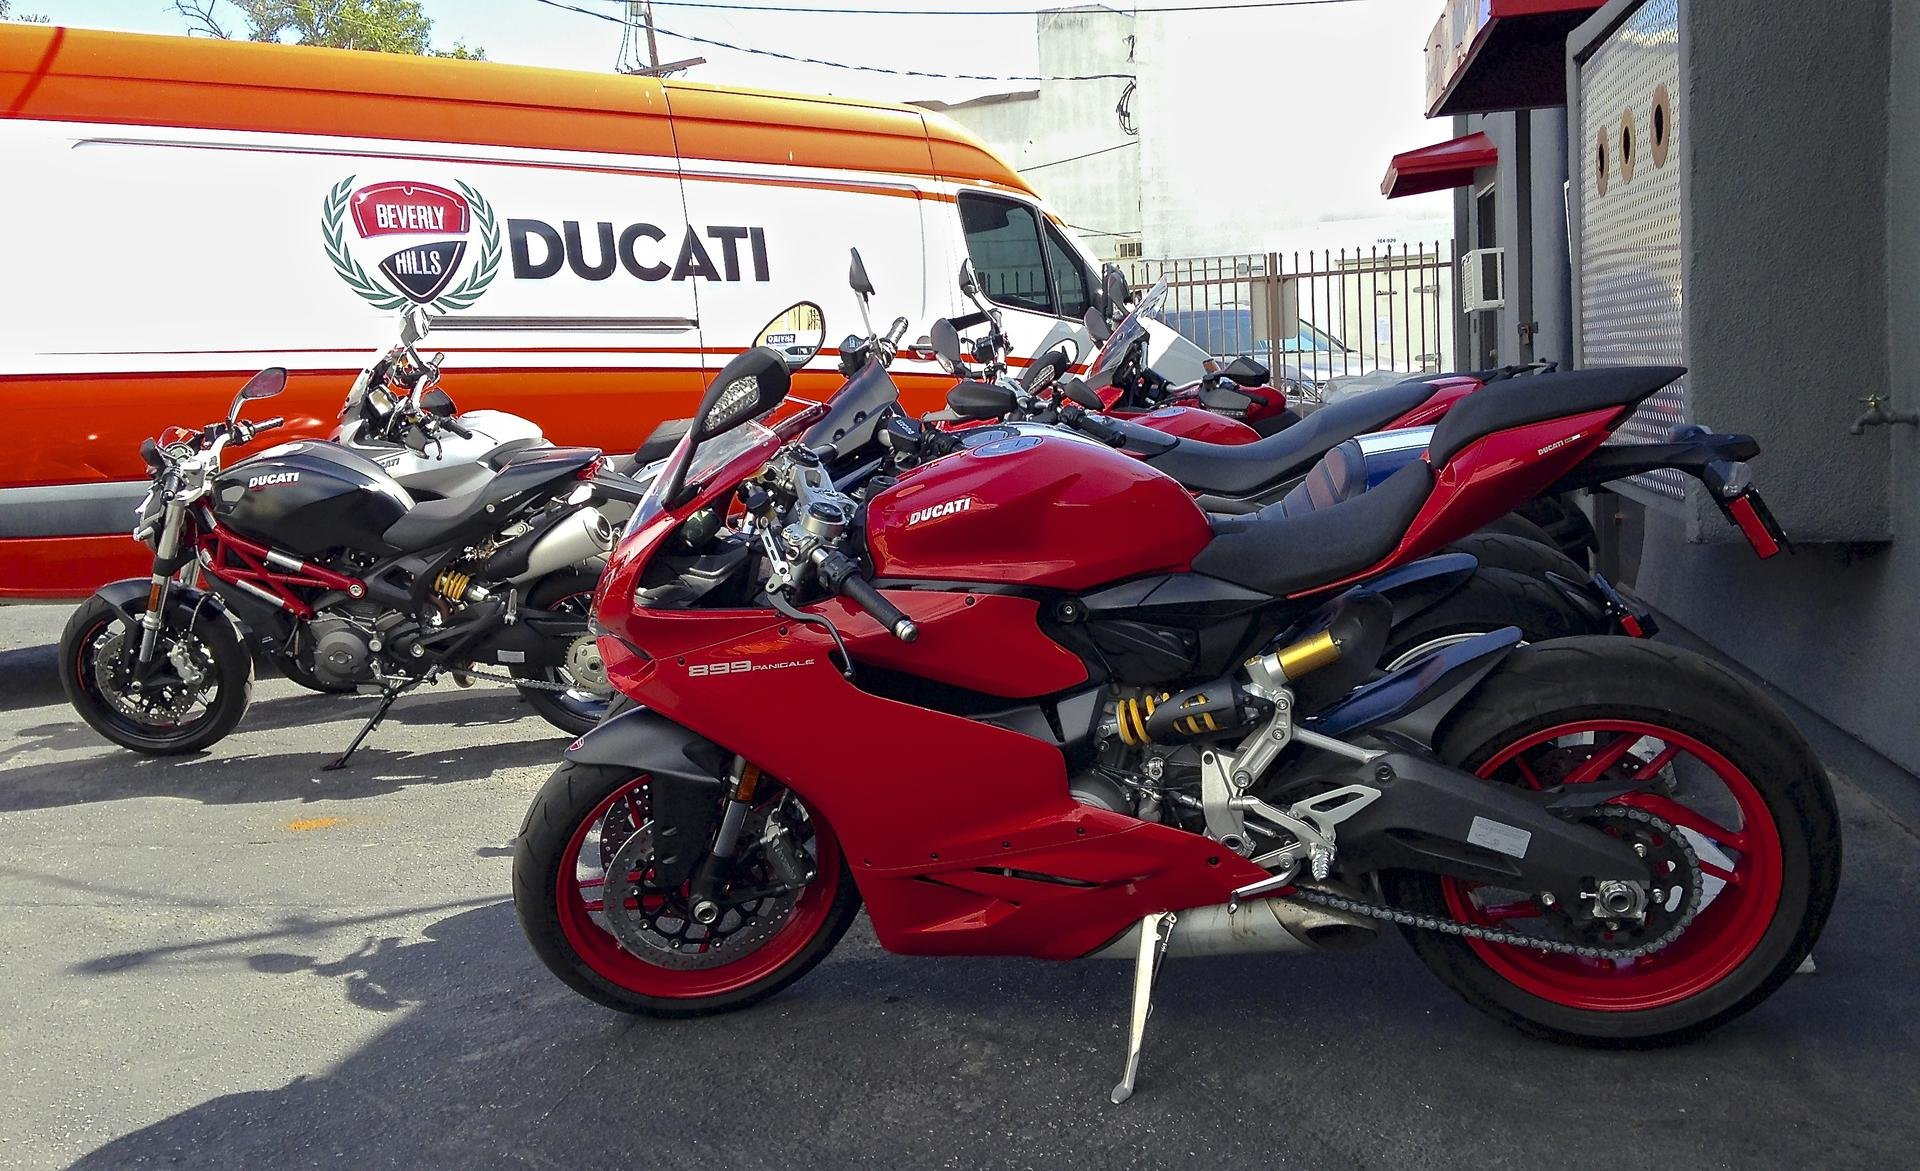 2015 Honda Grom >> wonder what the red rims would look like on the red bike...??? - Ducati 899 Panigale Forum